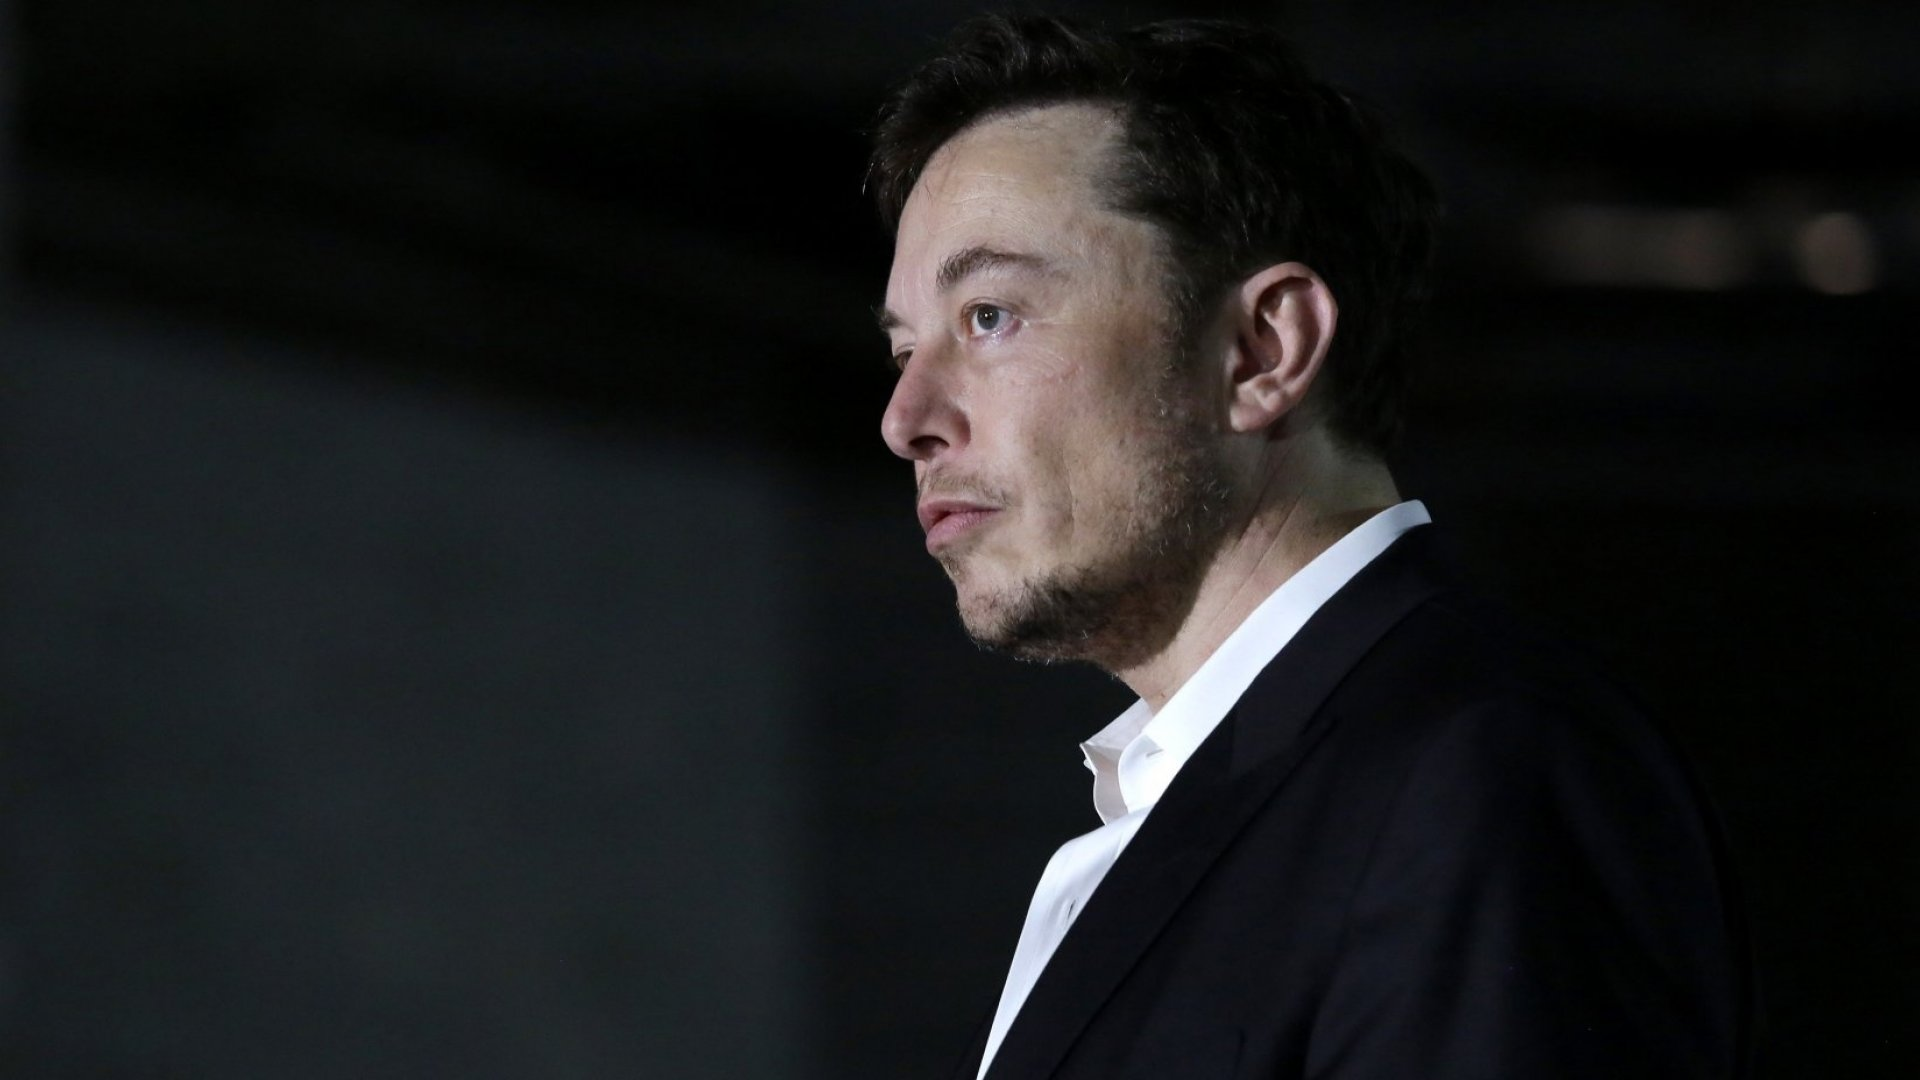 These 18 Words From Elon Musk Will Totally Transform How You Think About Leadership